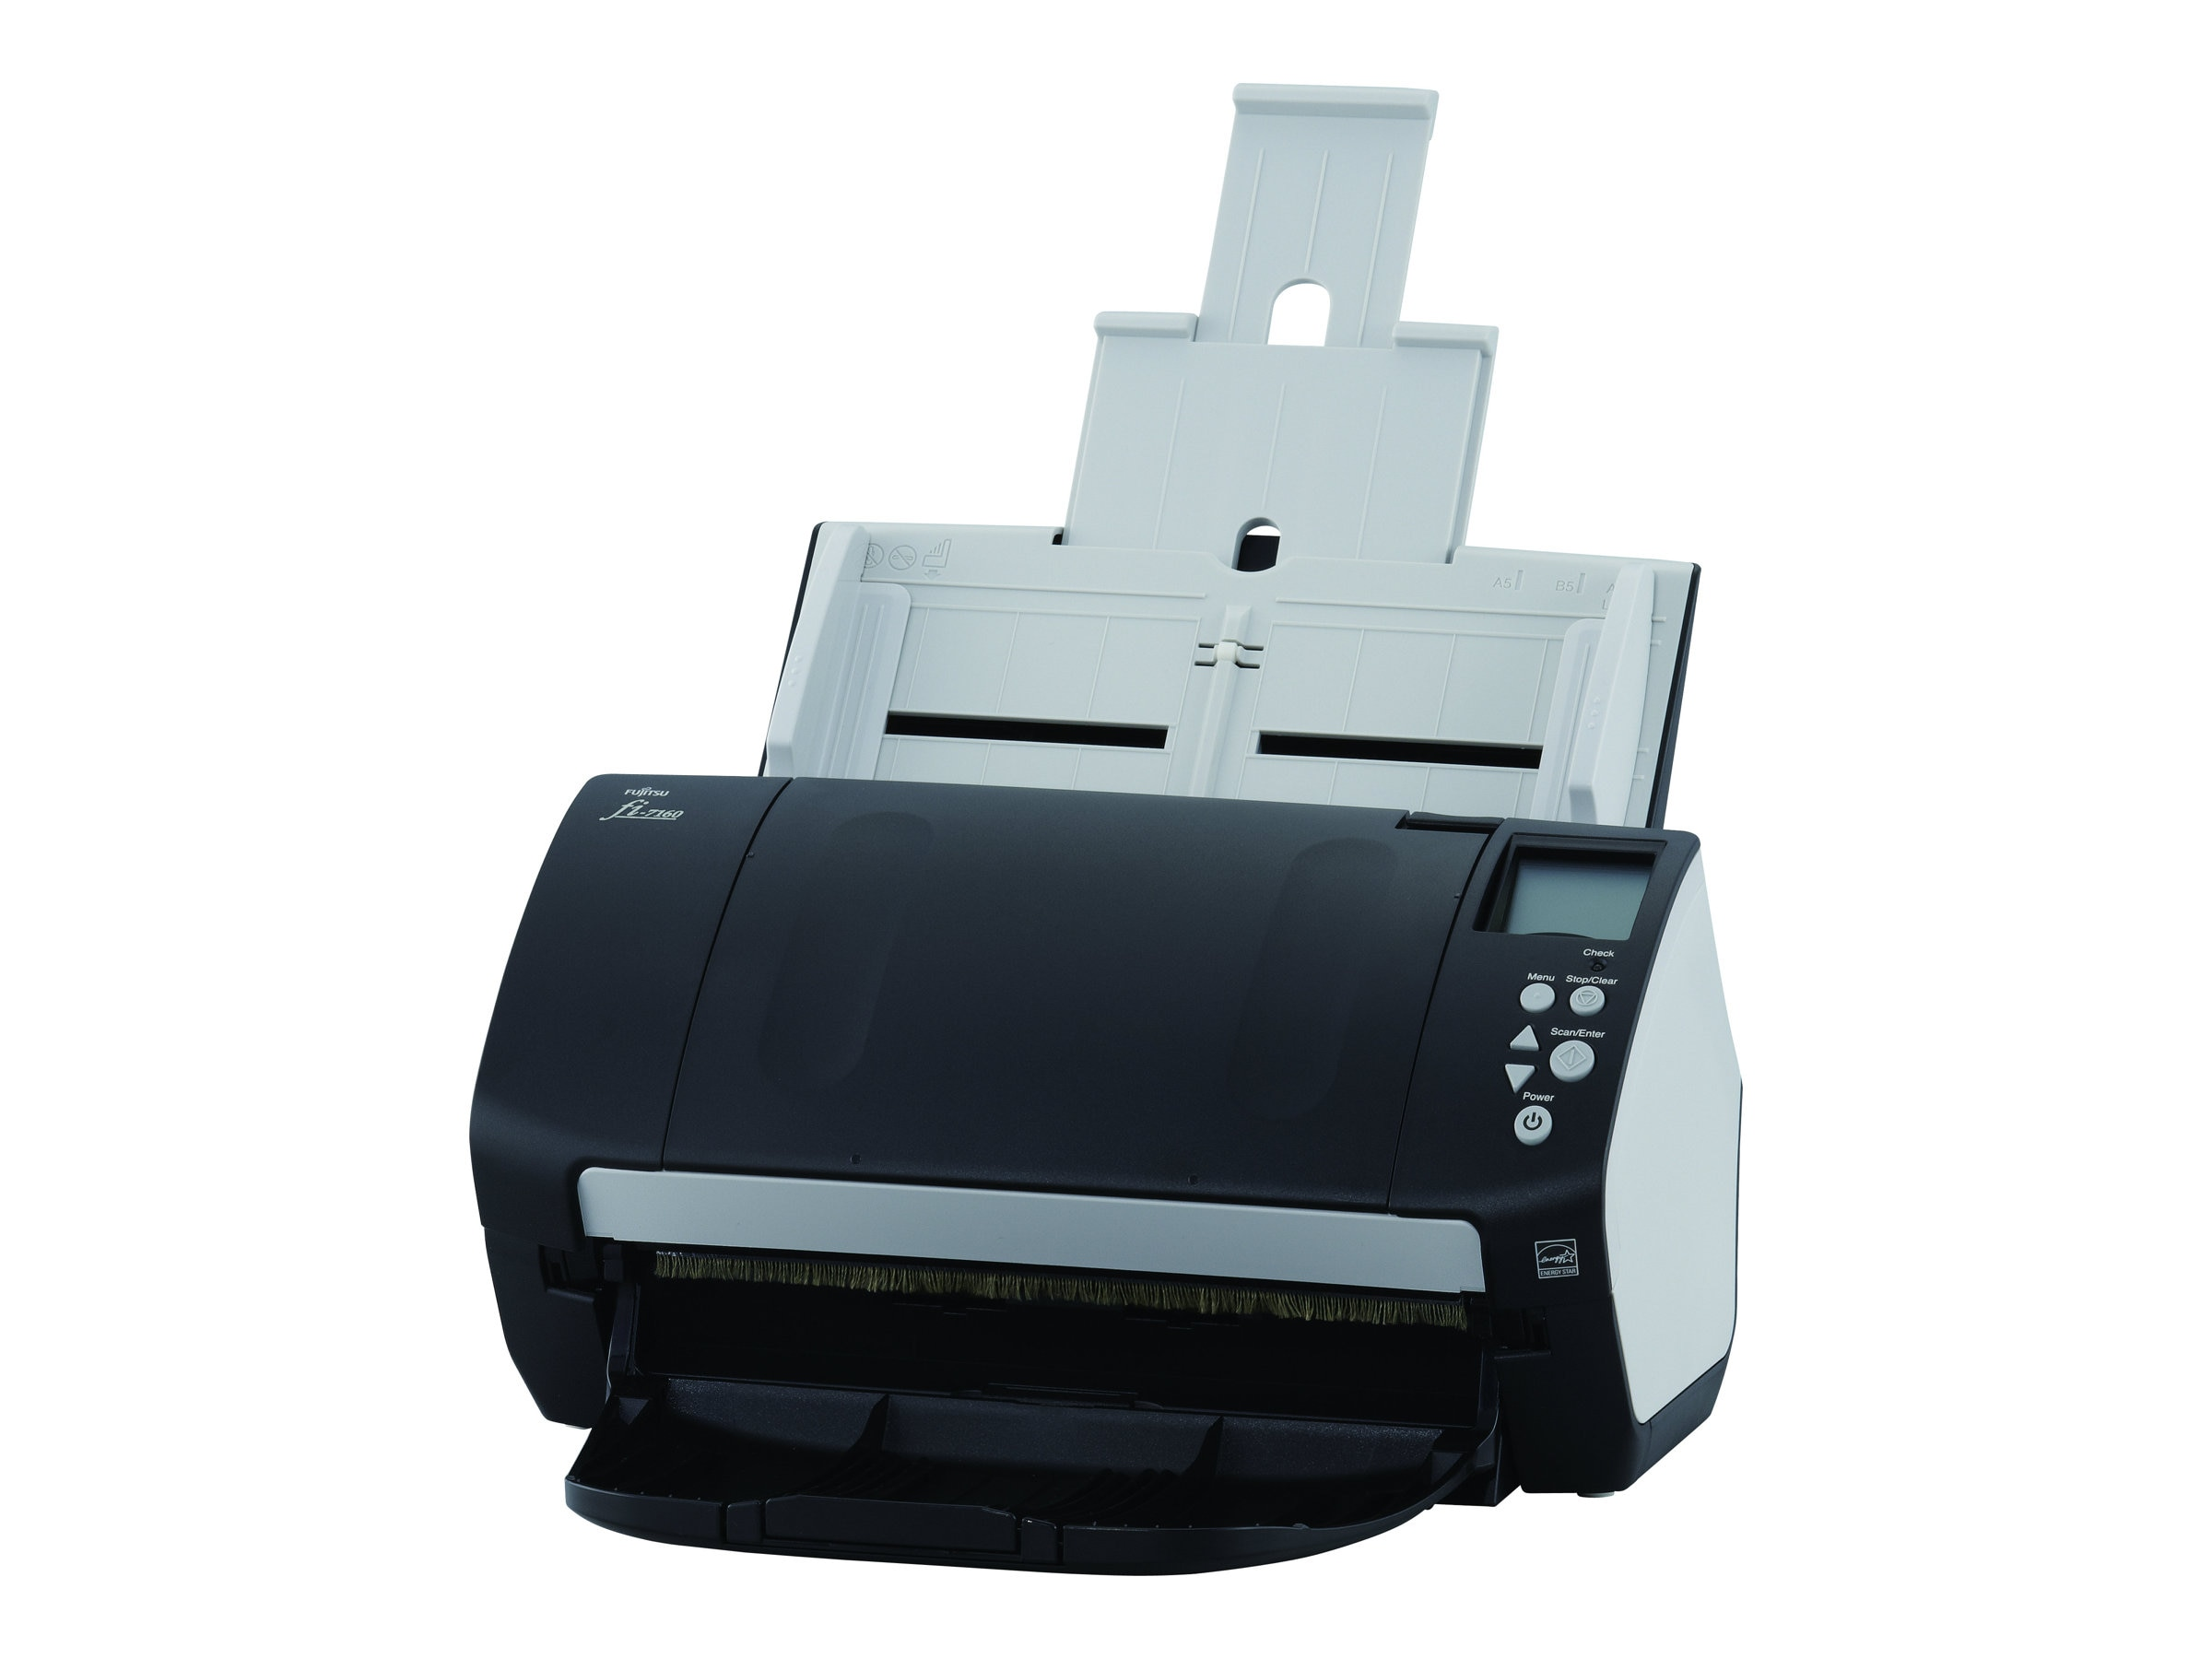 Fujitsu FI-7160 Color Duplex Sheetfed Scanner ADF 60ppm 120ipm 300dpi VRS Elite